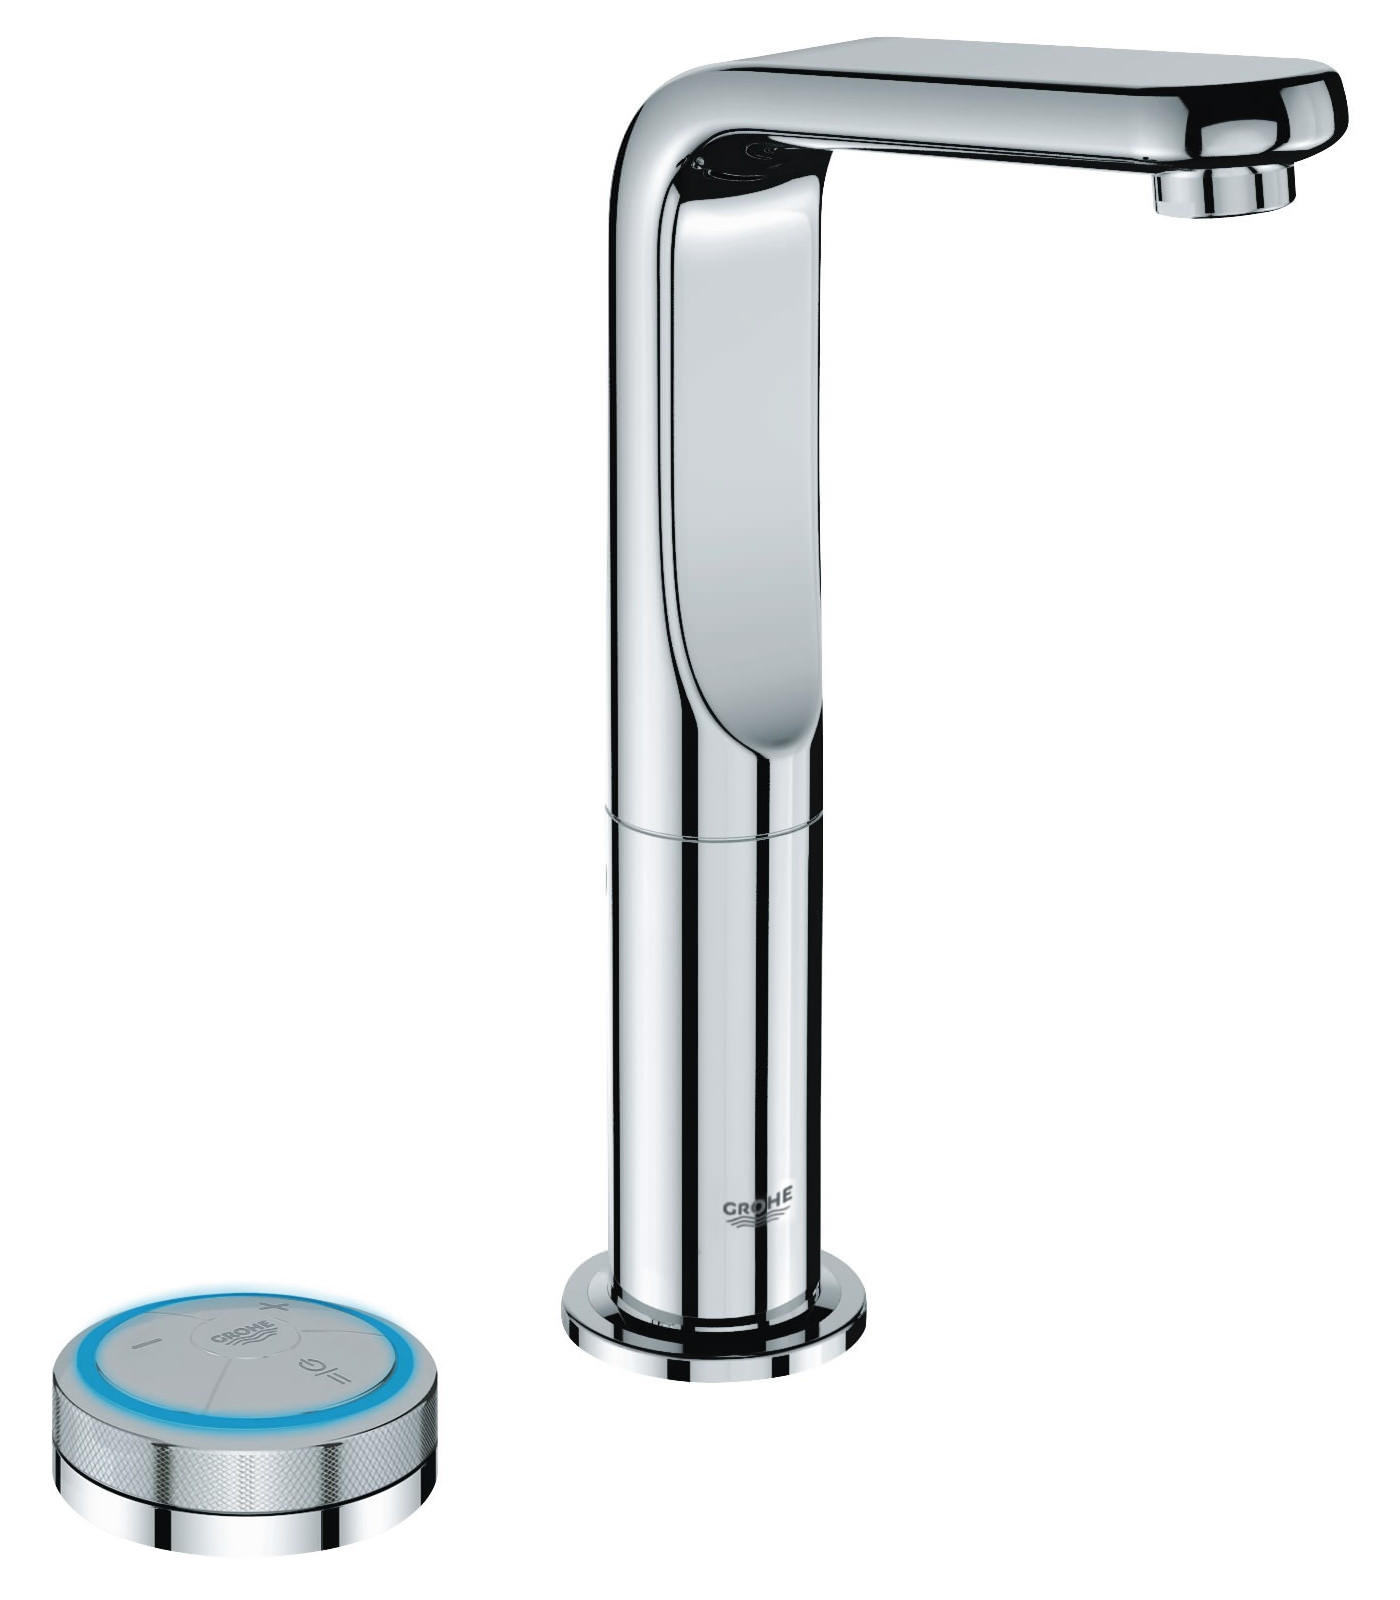 grohe spa veris f digital basin mixer tap with digital. Black Bedroom Furniture Sets. Home Design Ideas